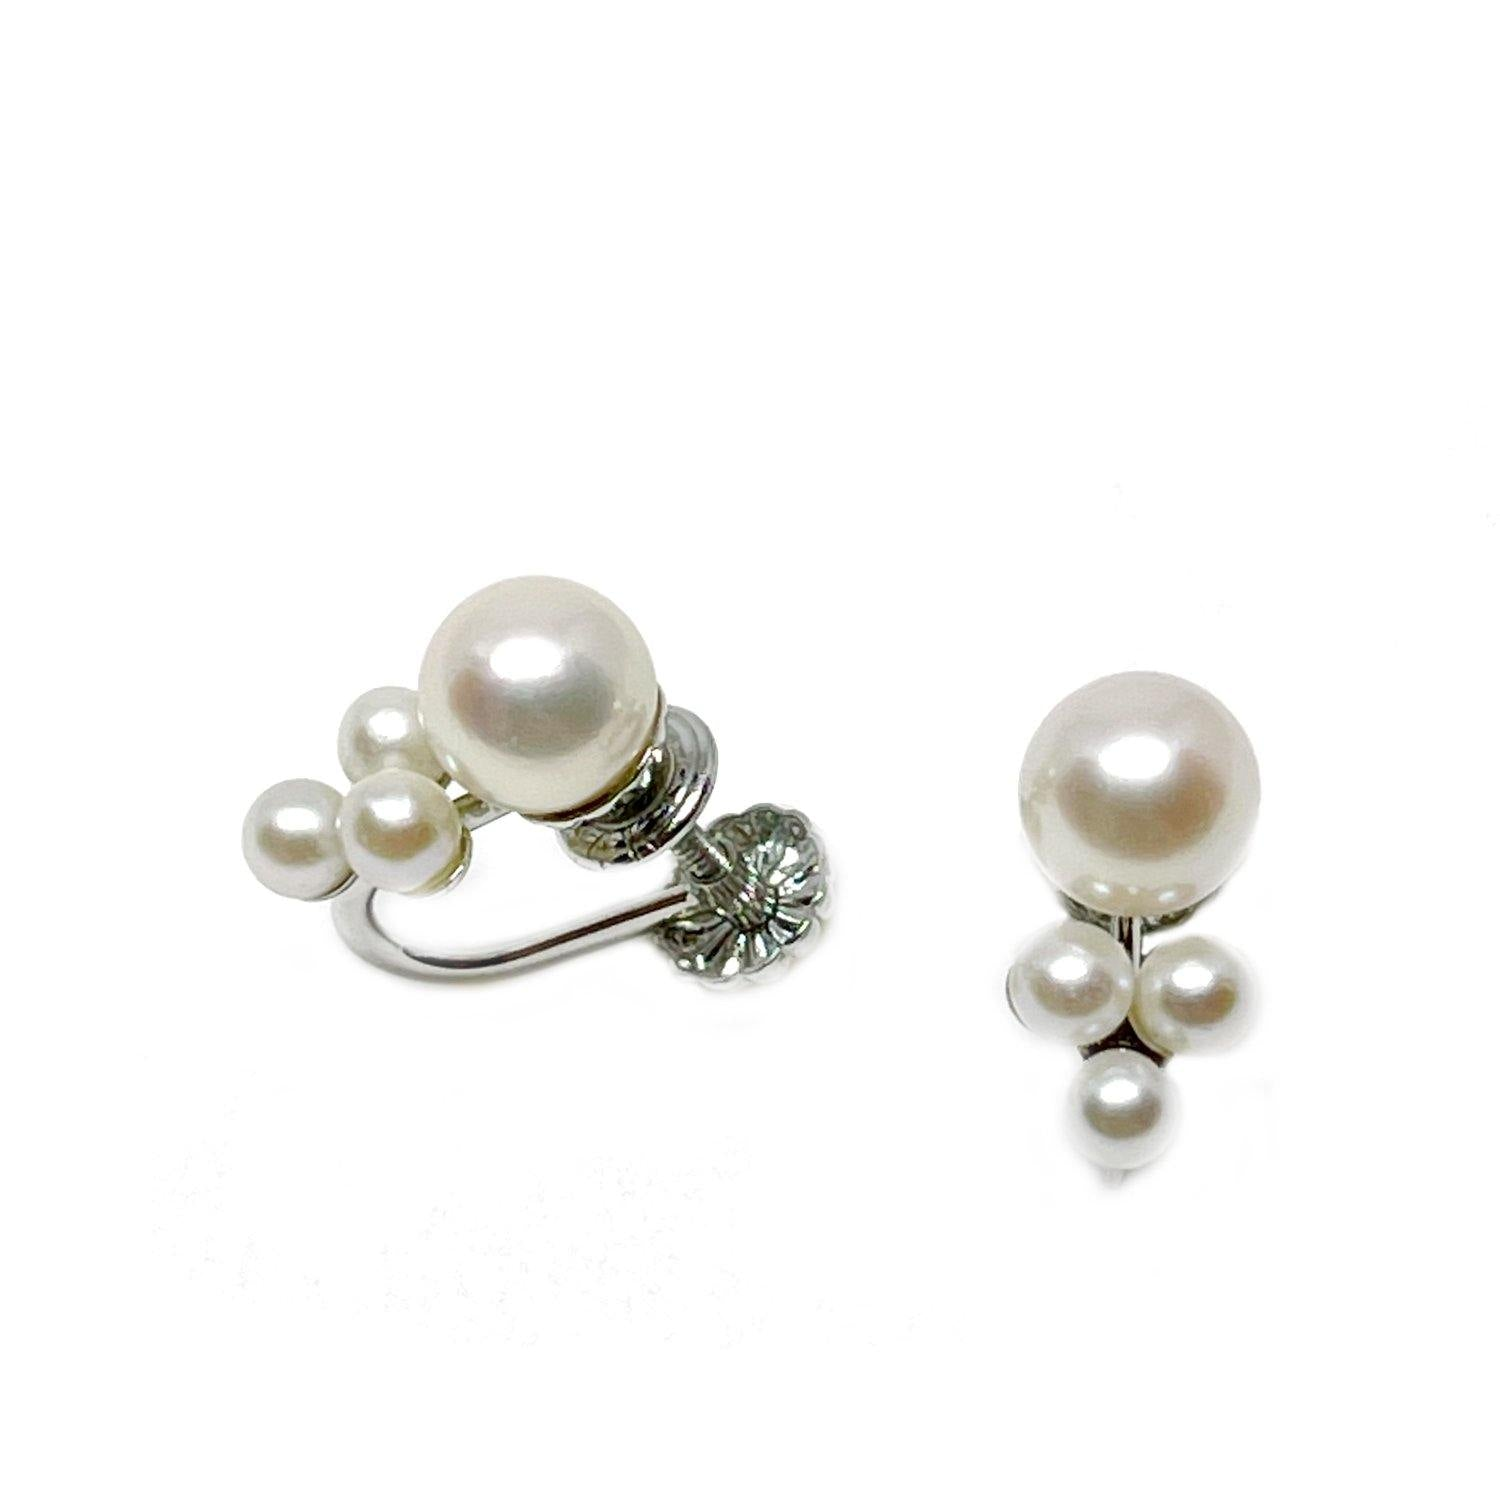 Serenade Akoya Saltwater Cultured Seed Pearl Screwback Earrings- 14K White Gold